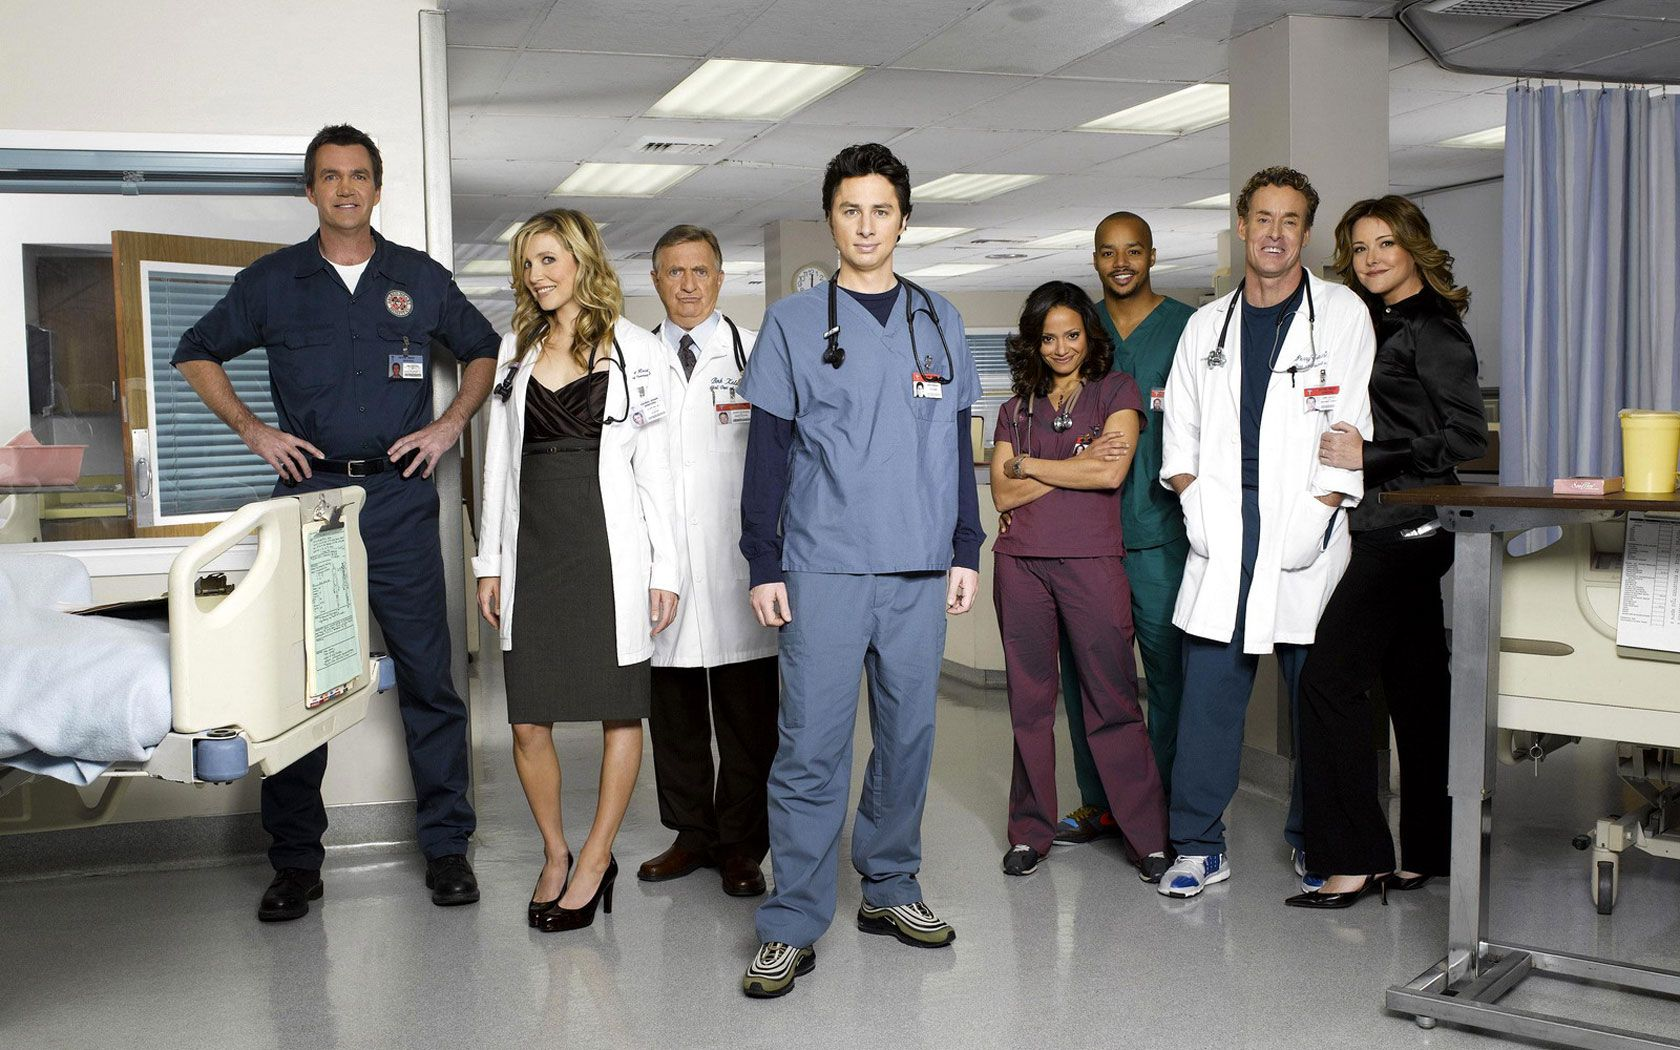 #Scrubs on #NCB and #ABC